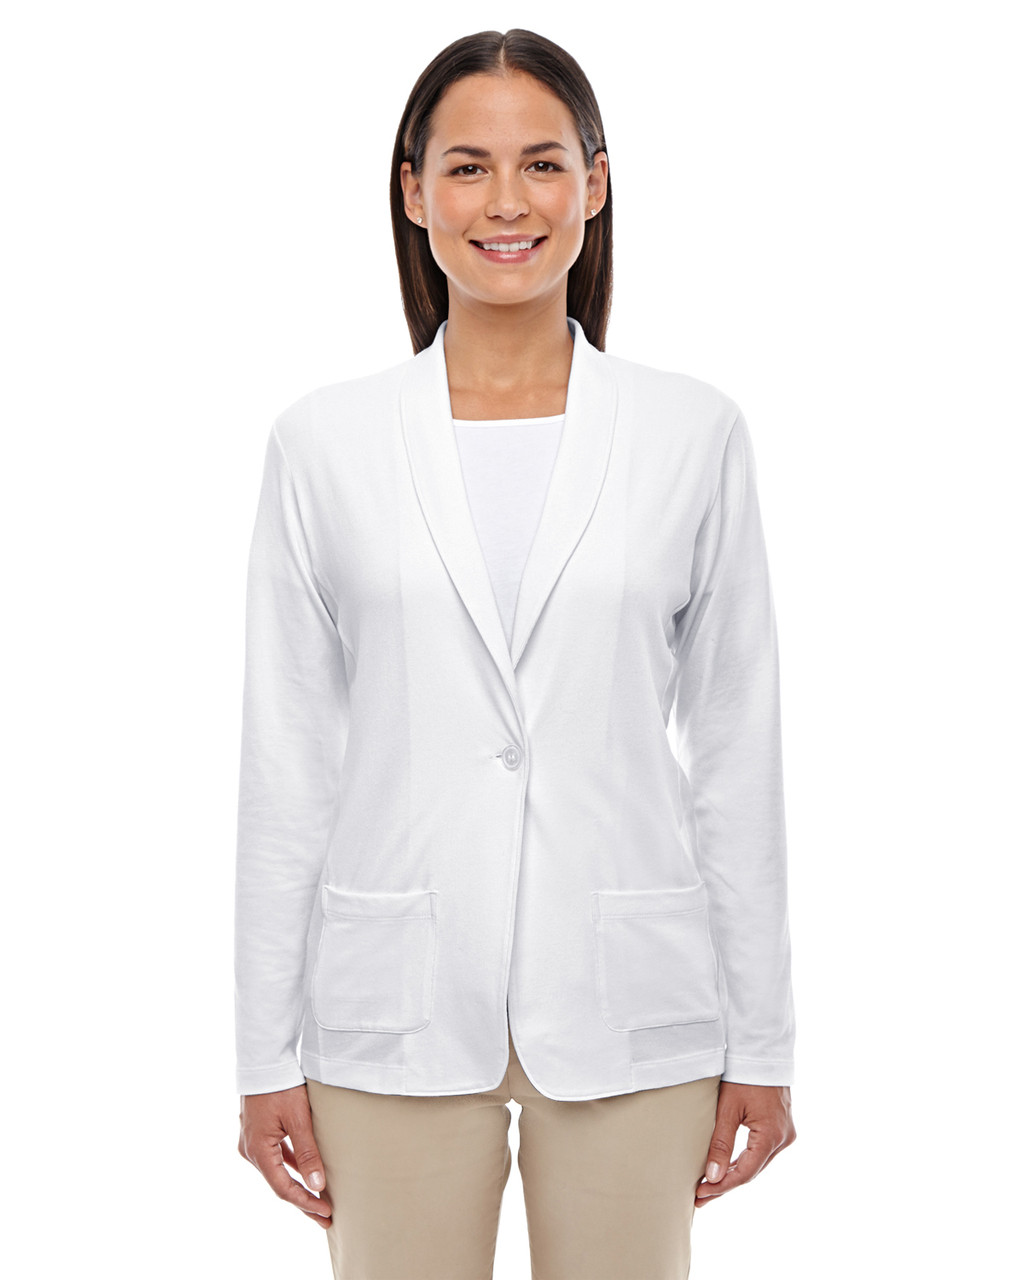 White - DP462W Devon & Jones Ladies' Perfect Fit Shawl Collar Cardigan